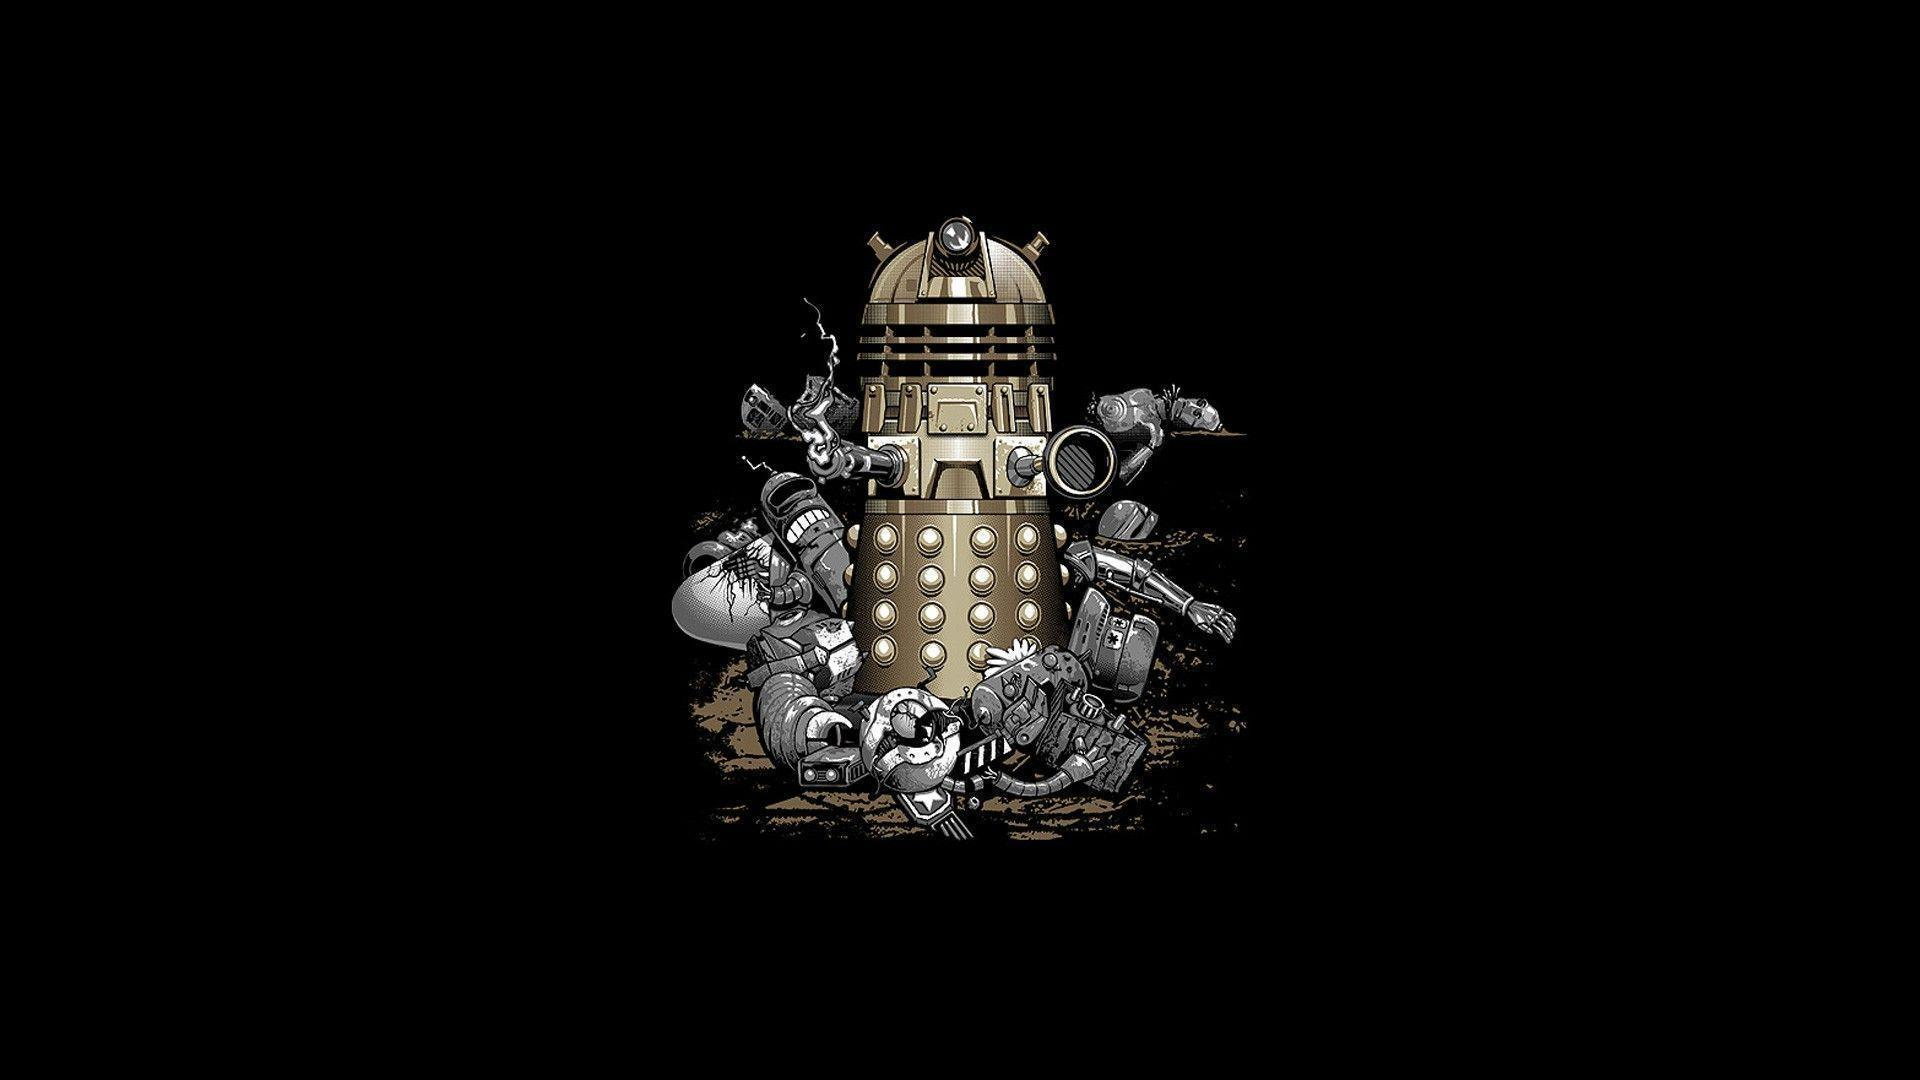 Daleks Doctor Who Wallpapers 1920x1080PX ~ Wallpapers Doctor Who Hd